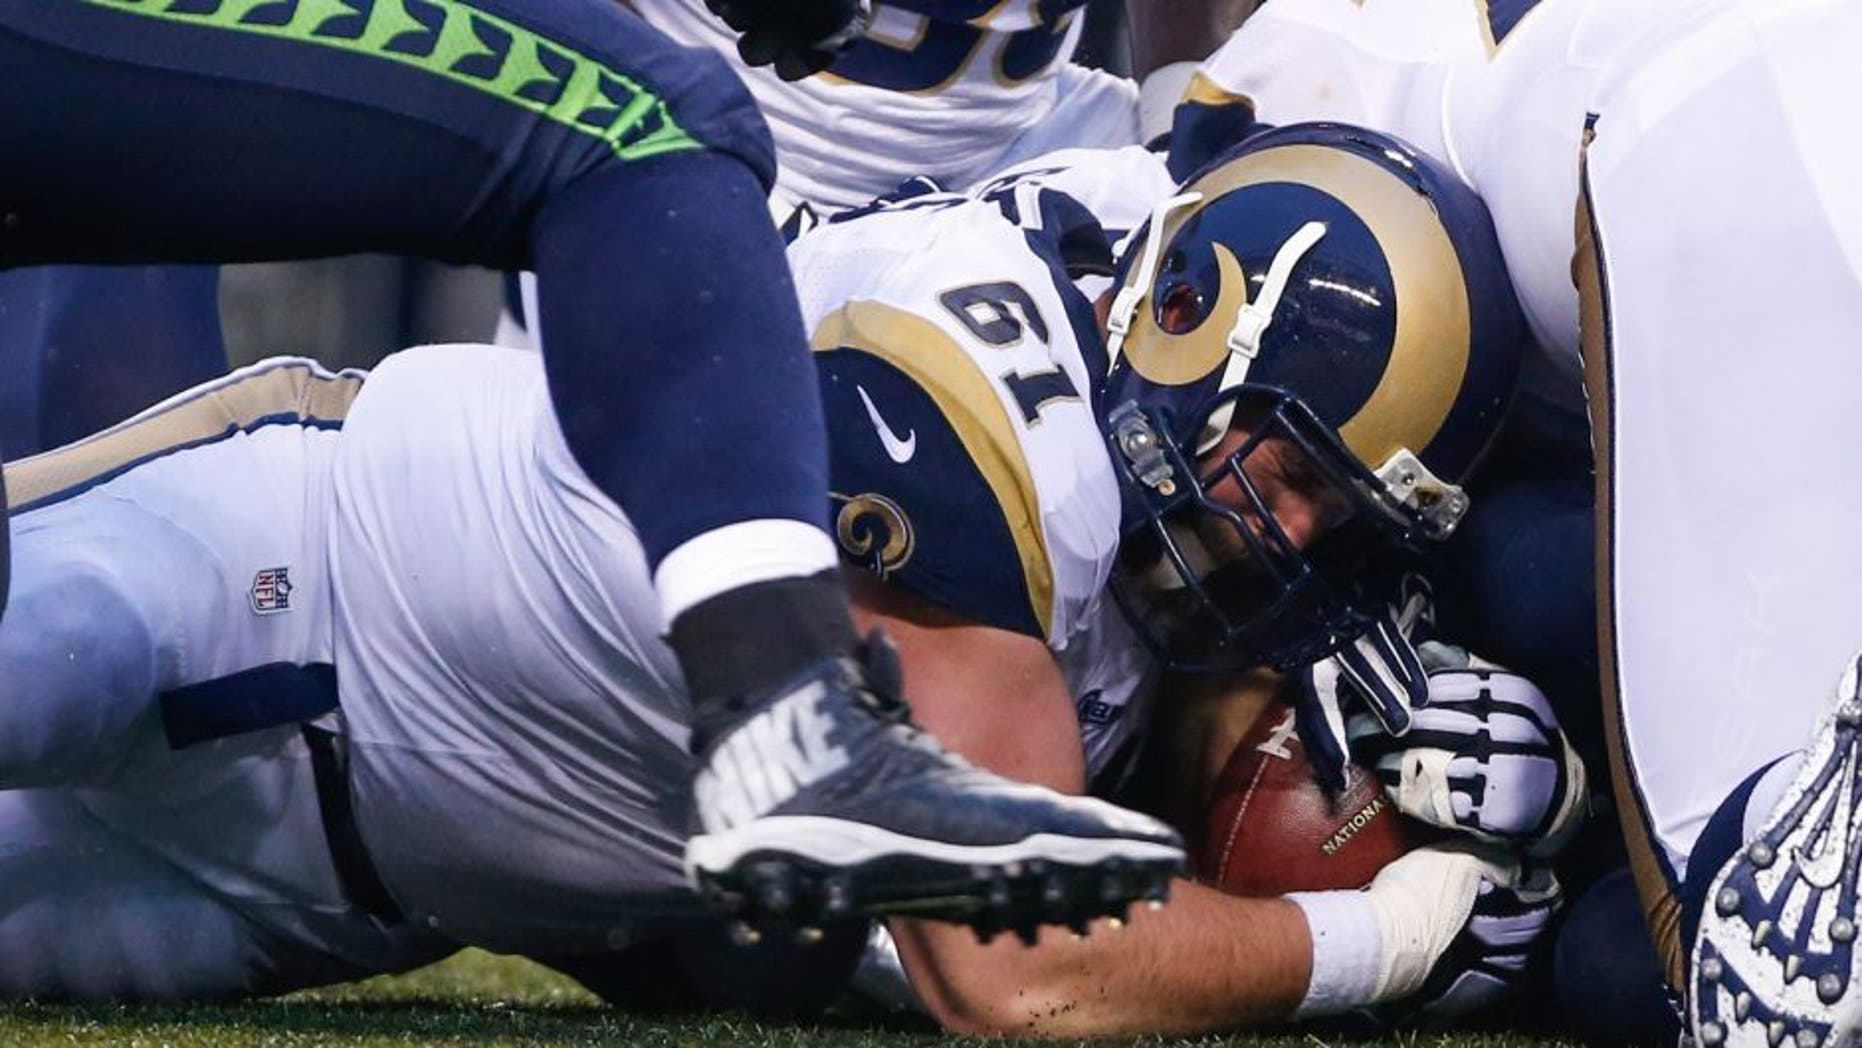 Dec 27, 2015; Seattle, WA, USA; St. Louis Rams center Tim Barnes (61) recovers a fumble against the Seattle Seahawks during the fourth quarter at CenturyLink Field. Mandatory Credit: Joe Nicholson-USA TODAY Sports